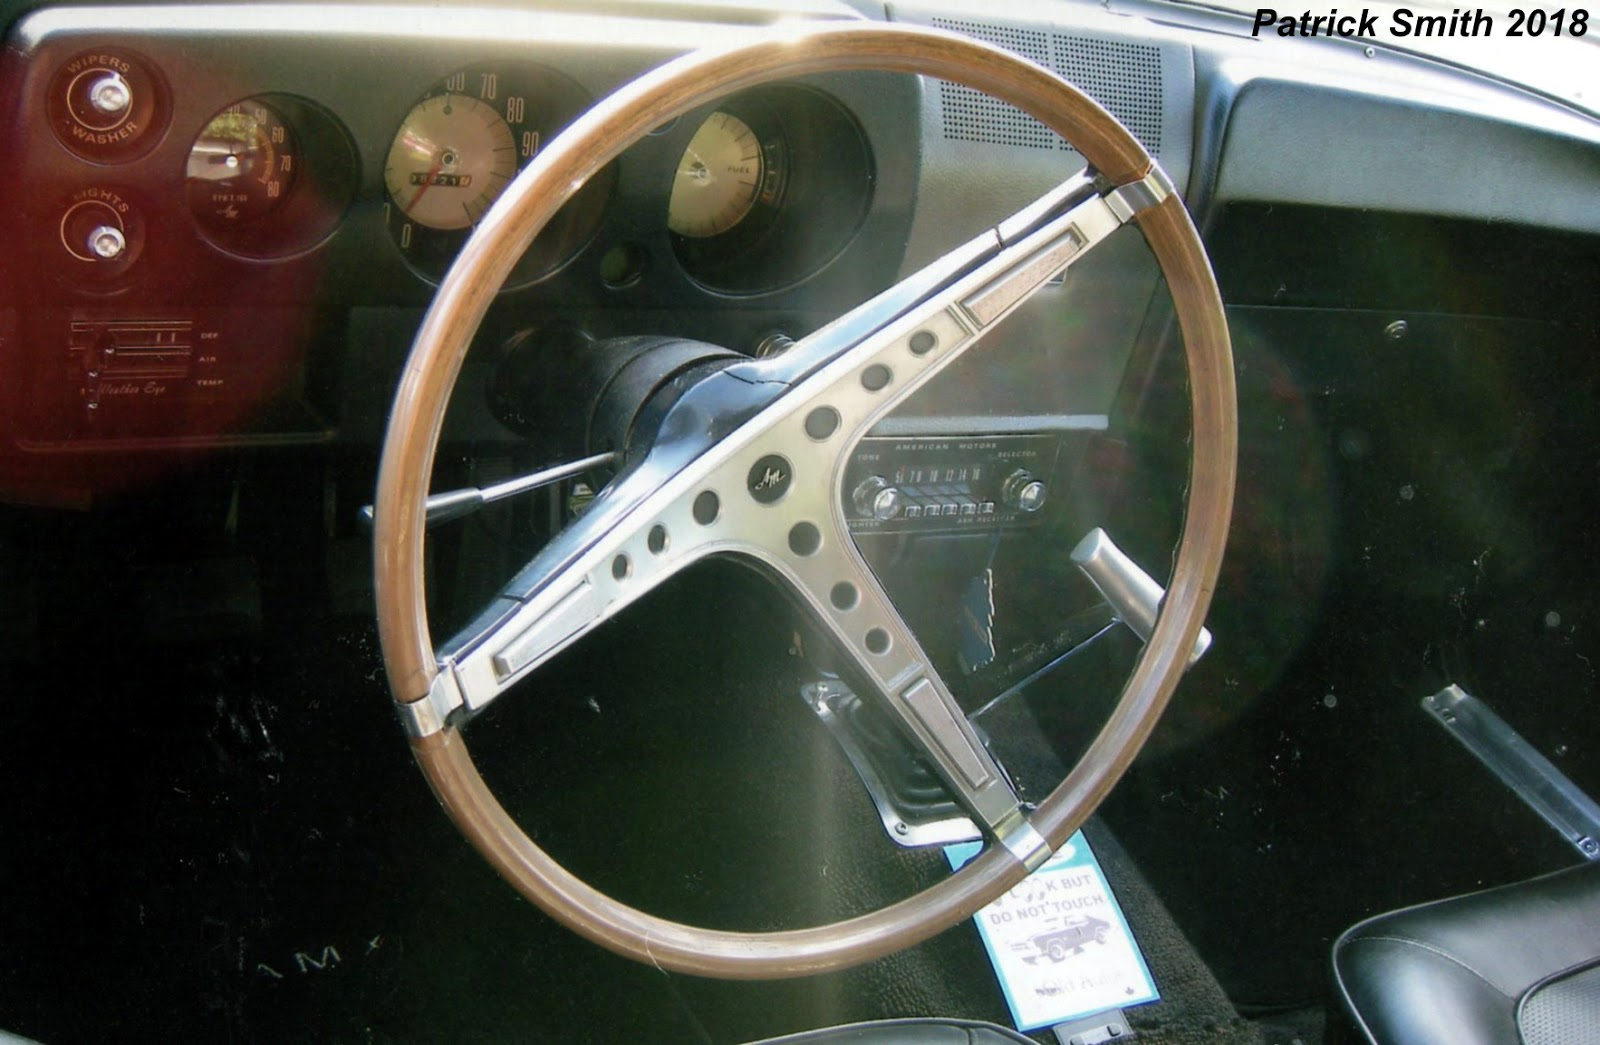 Phscollectorcarworld February 2018 1968 Amx Tachometer Wiring Diagram Wood Grain Steering Wheel And Pushbutton Radio Are Just Two Options Found In This Coupe